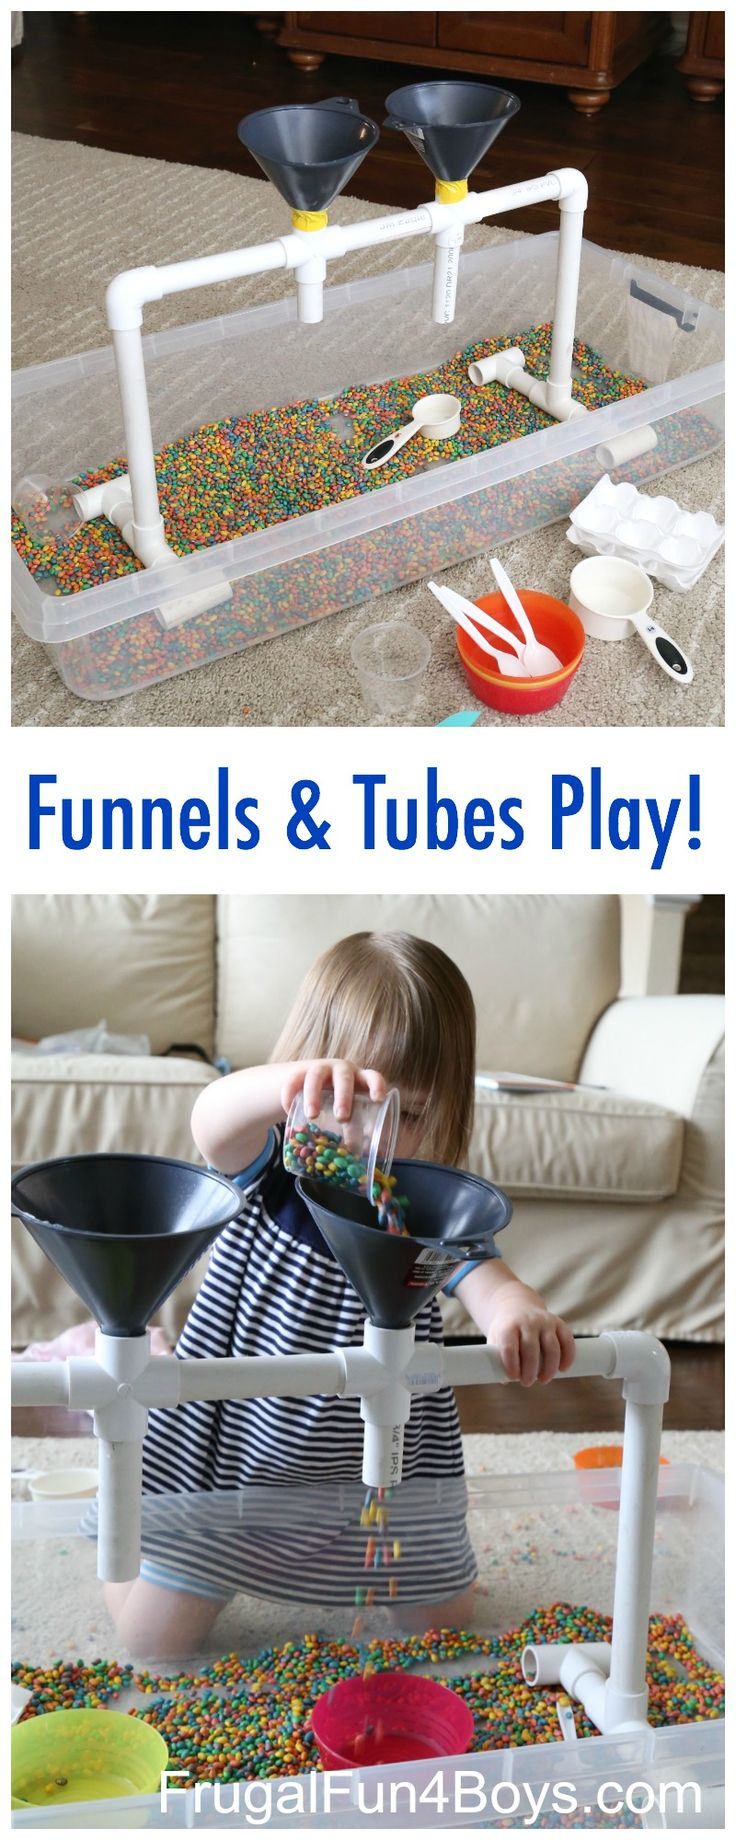 Sensory Play with Funnels, Tubes, and Colored Beans